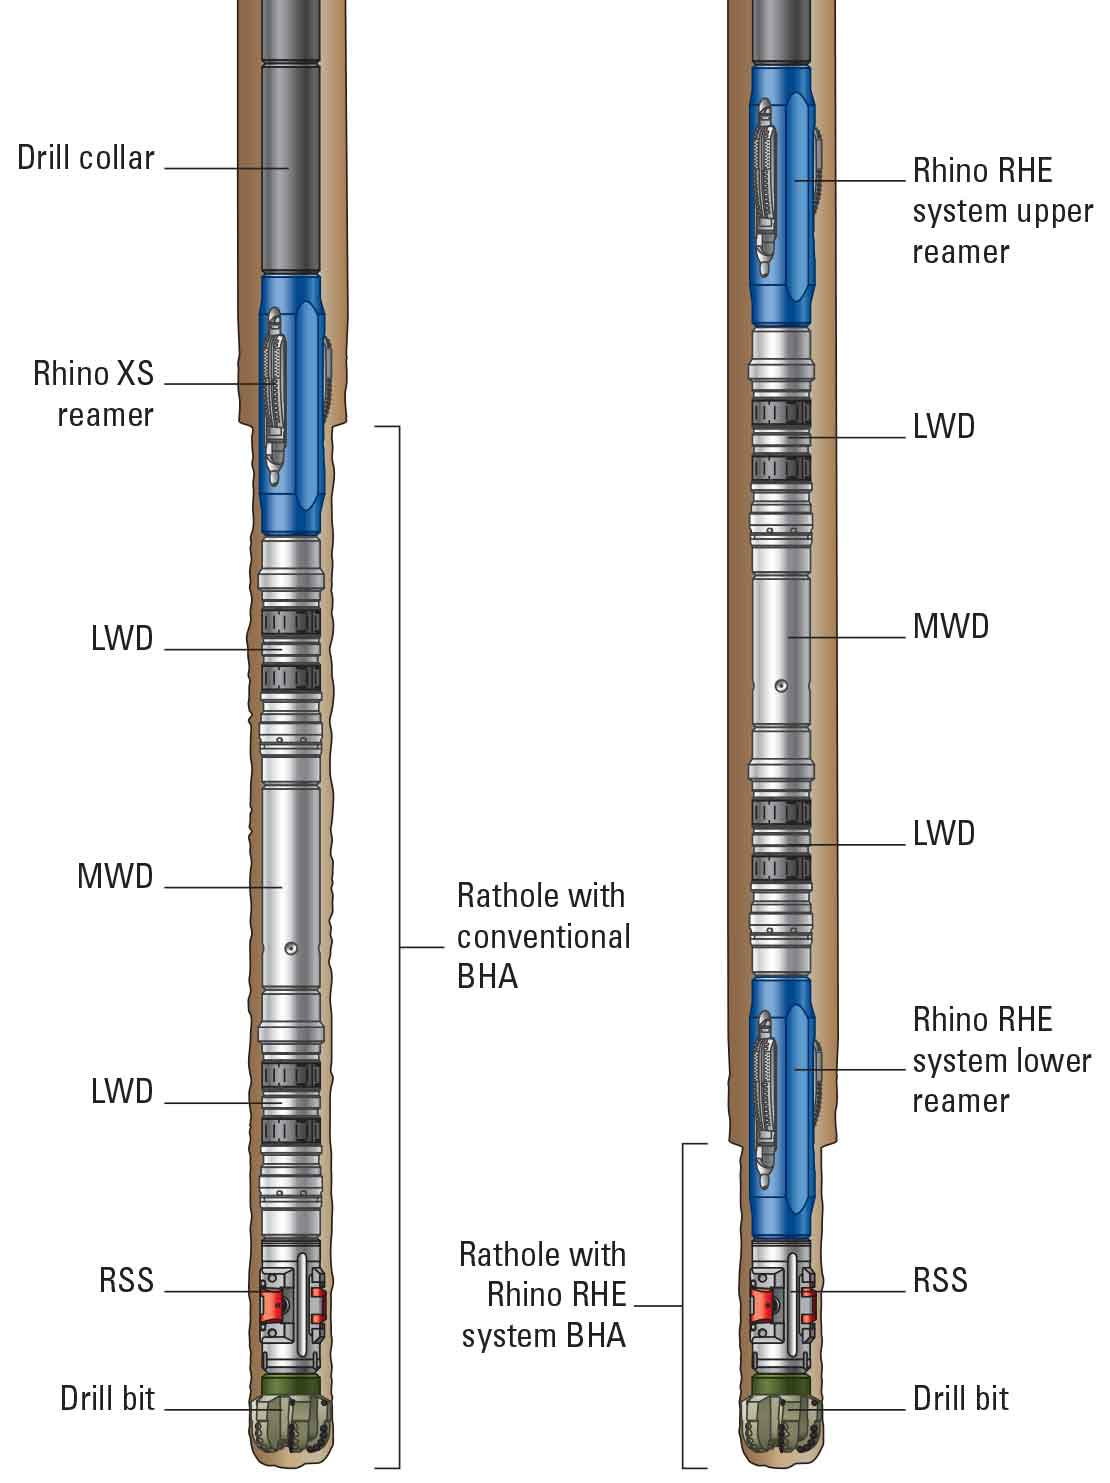 Rhino RHE dual-reamer rathole elimination system diagram.